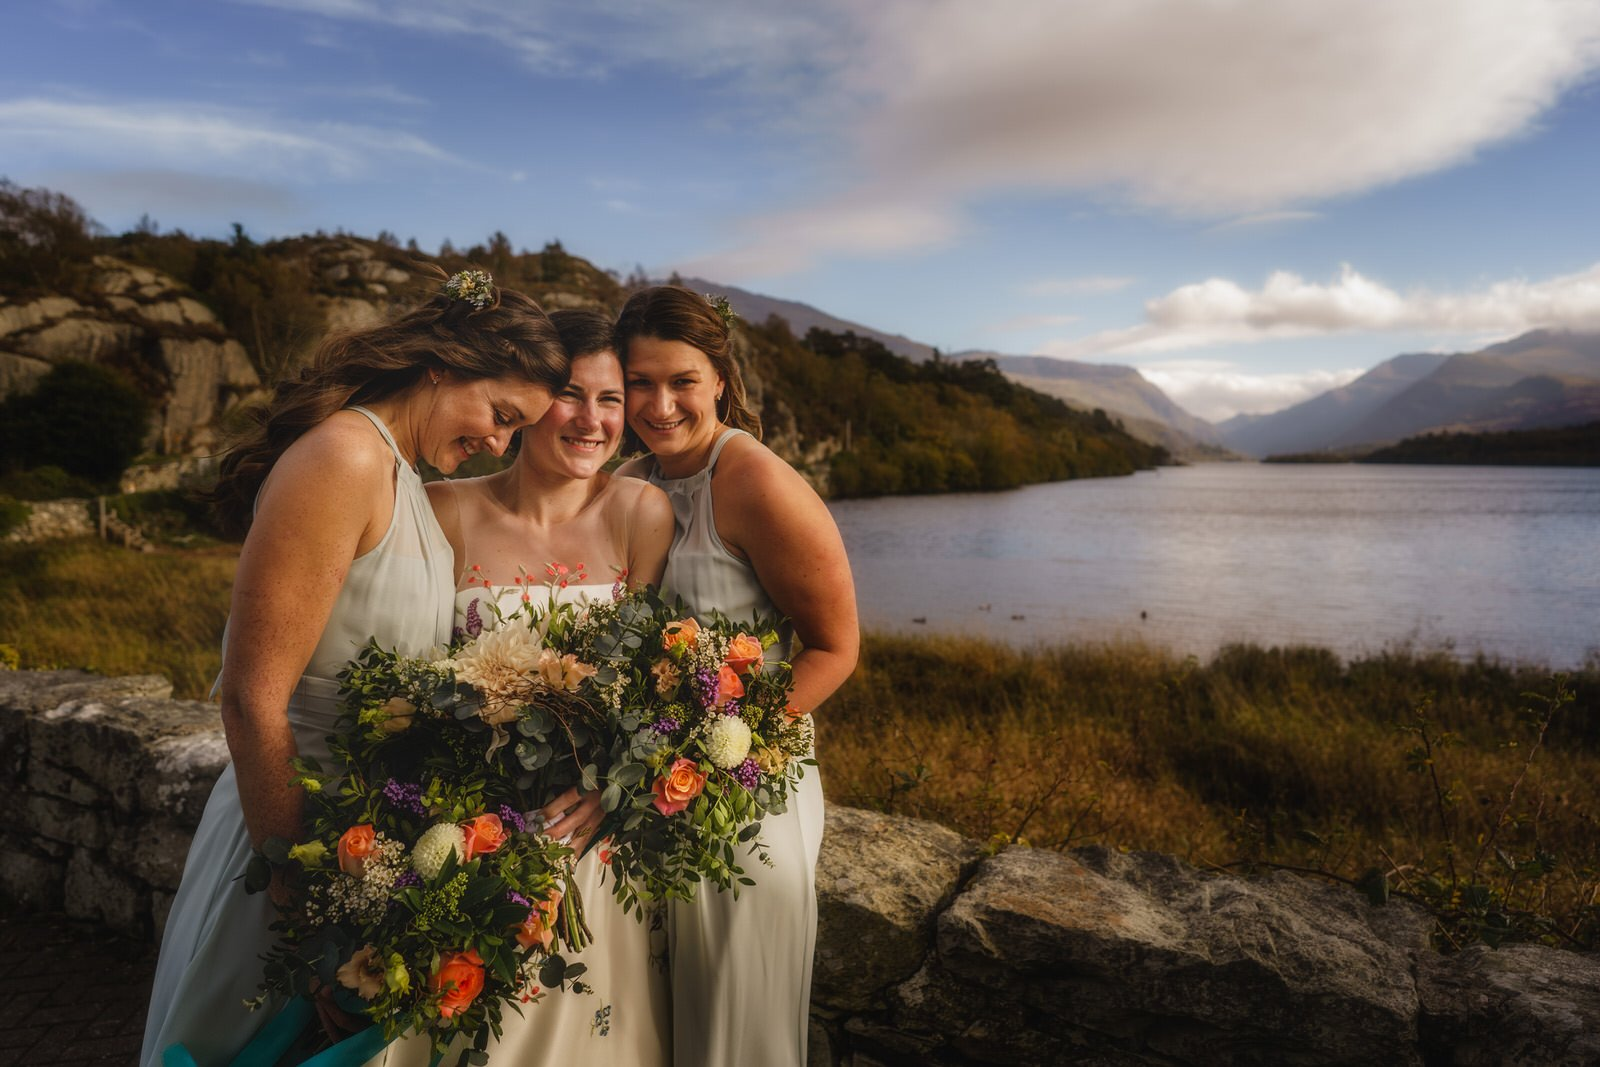 Snowdonia Wedding Photographer at Llyn Gwynant